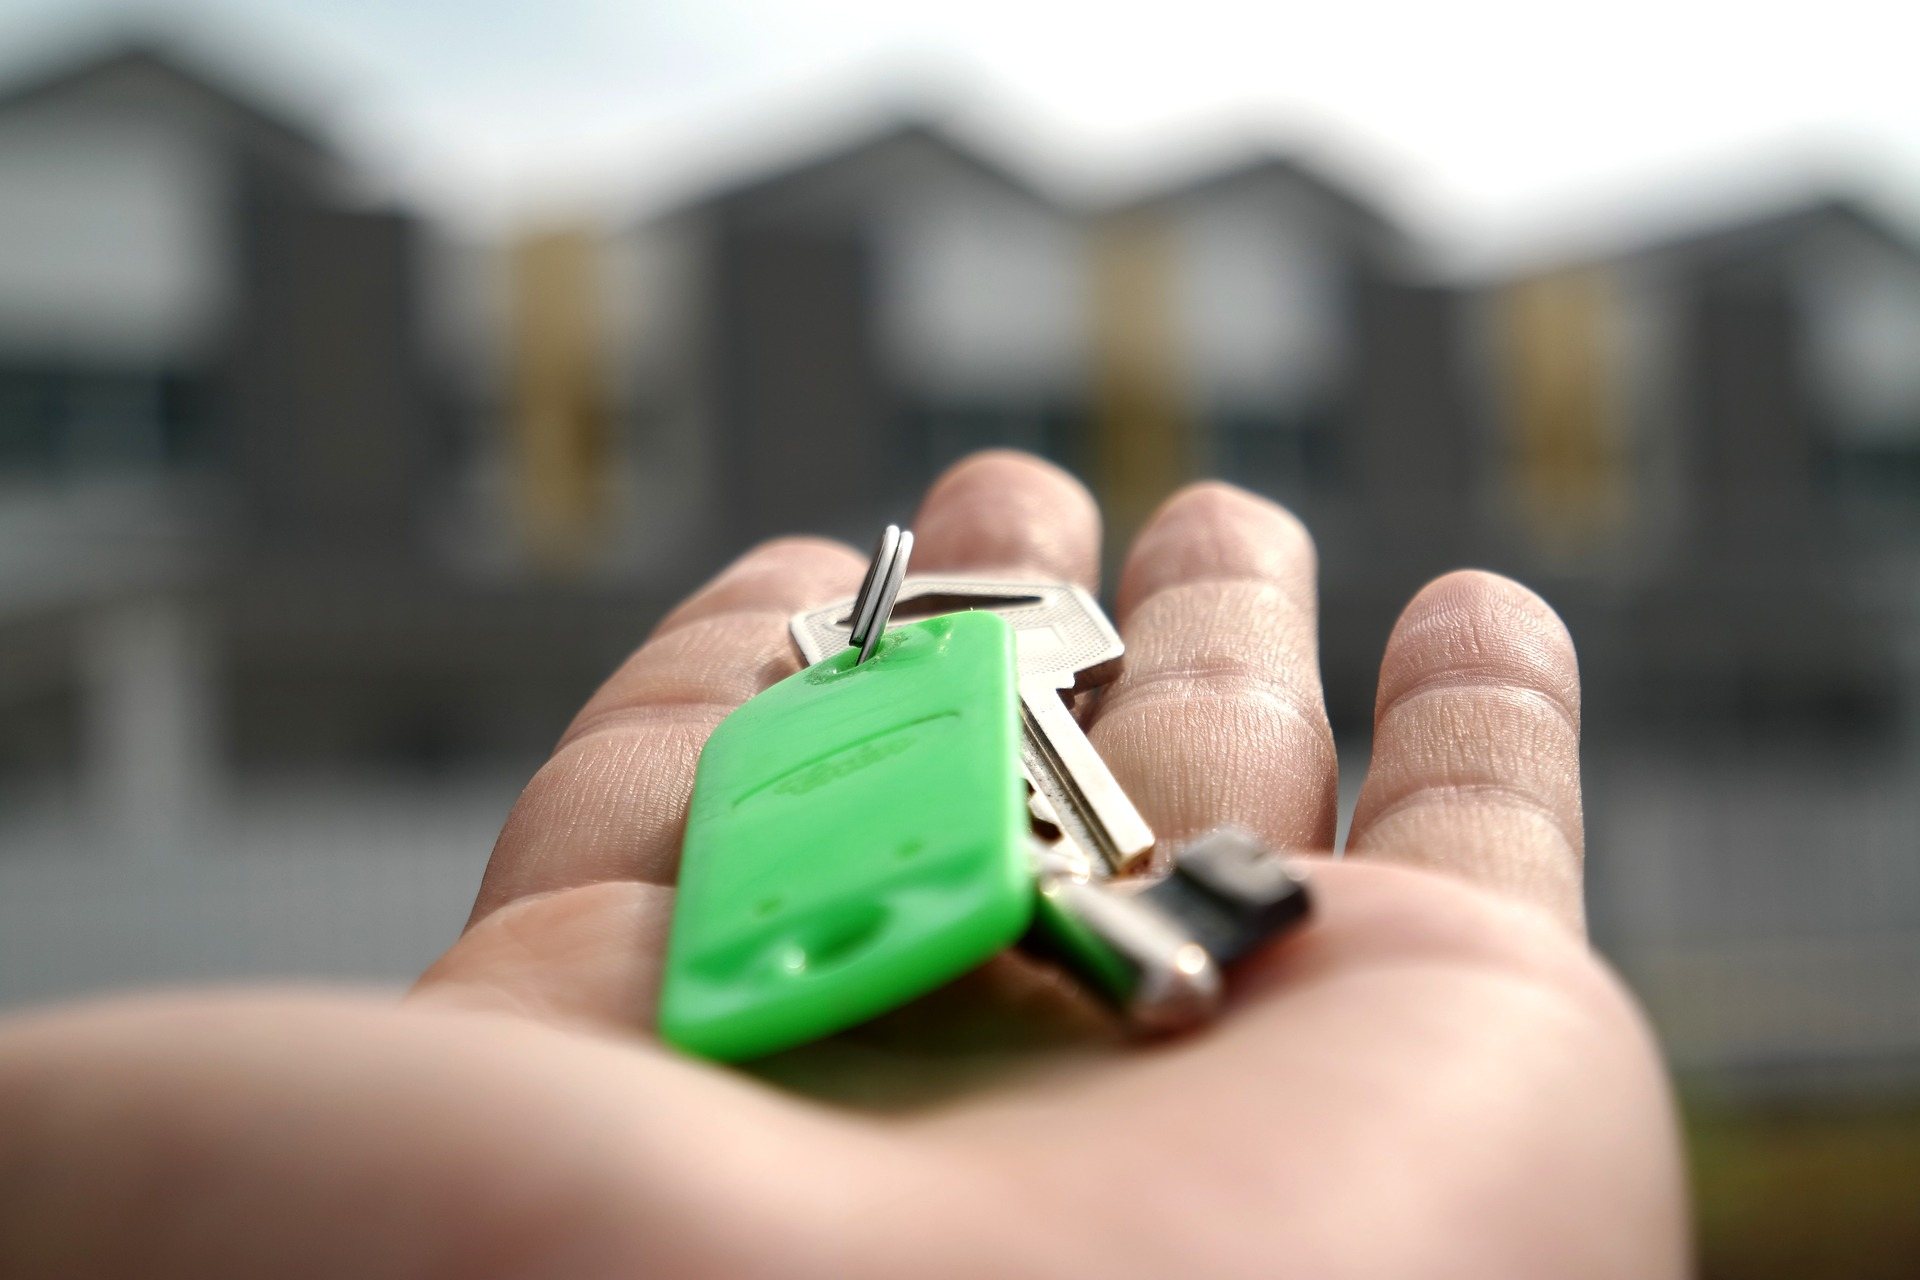 Close-up picture of someone's hand with apartment keys in it